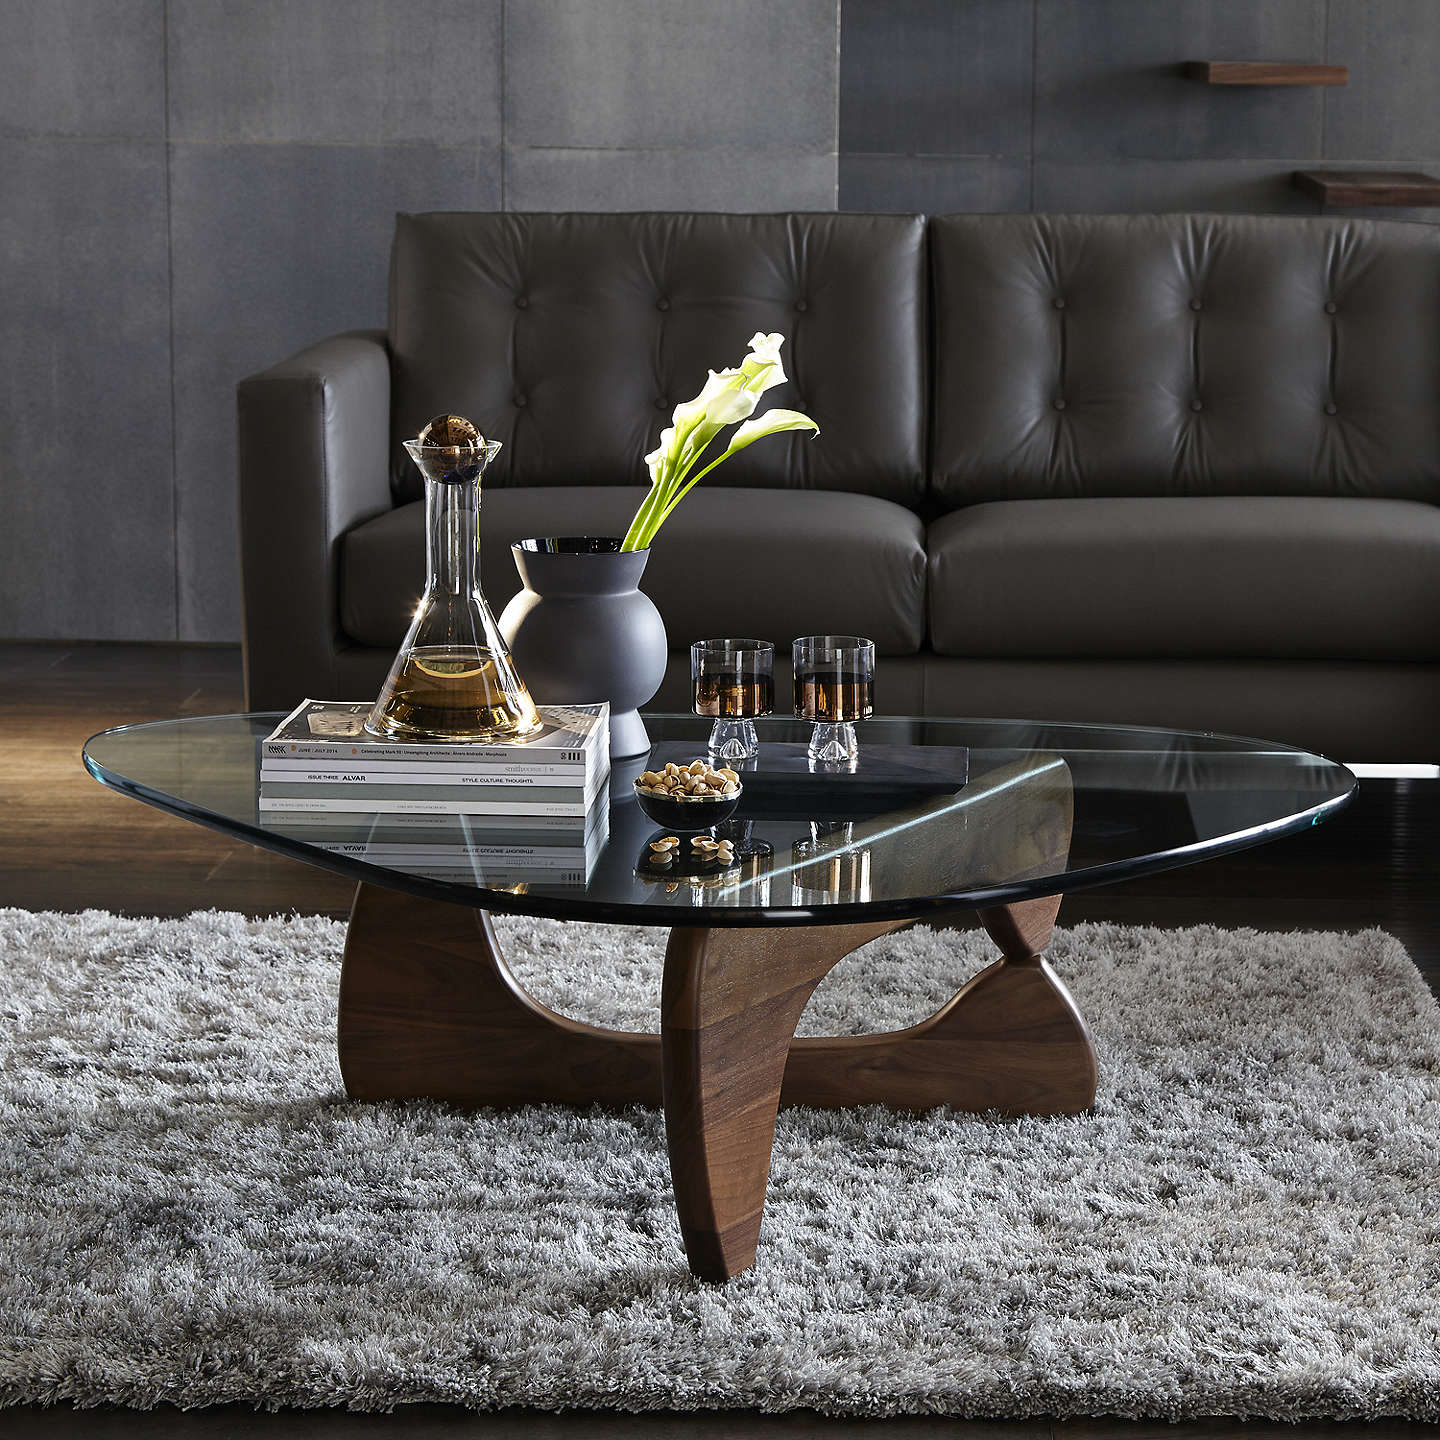 vitra noguchi coffee table walnut at john lewis. Black Bedroom Furniture Sets. Home Design Ideas